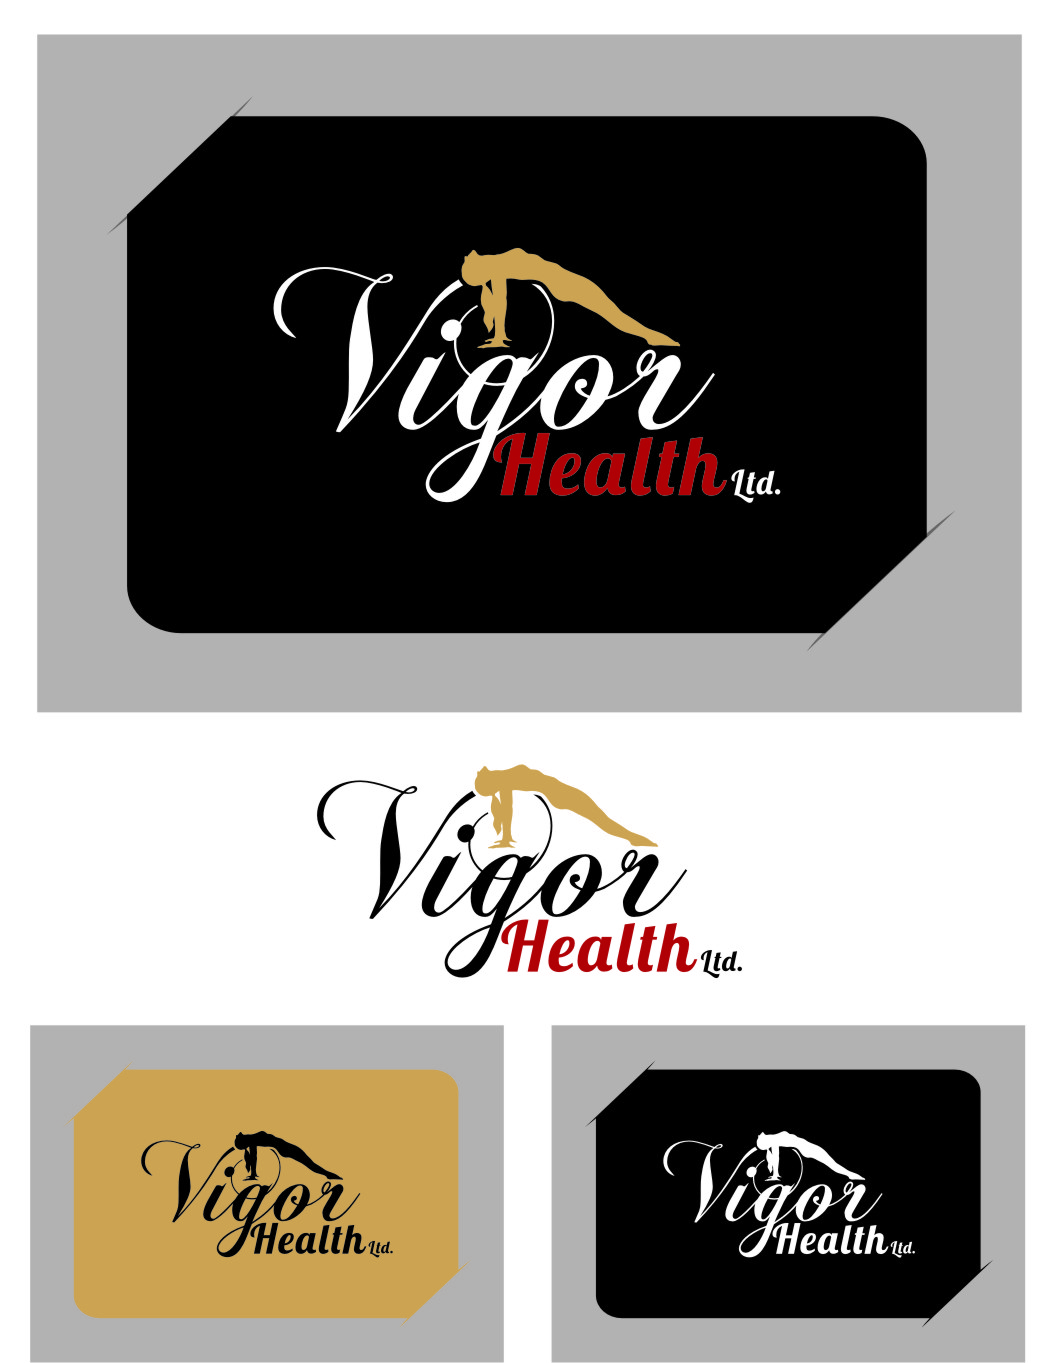 Custom Design by Ngepet_art - Entry No. 86 in the Custom Design Contest New Custom Design for Vigor Health Ltd..